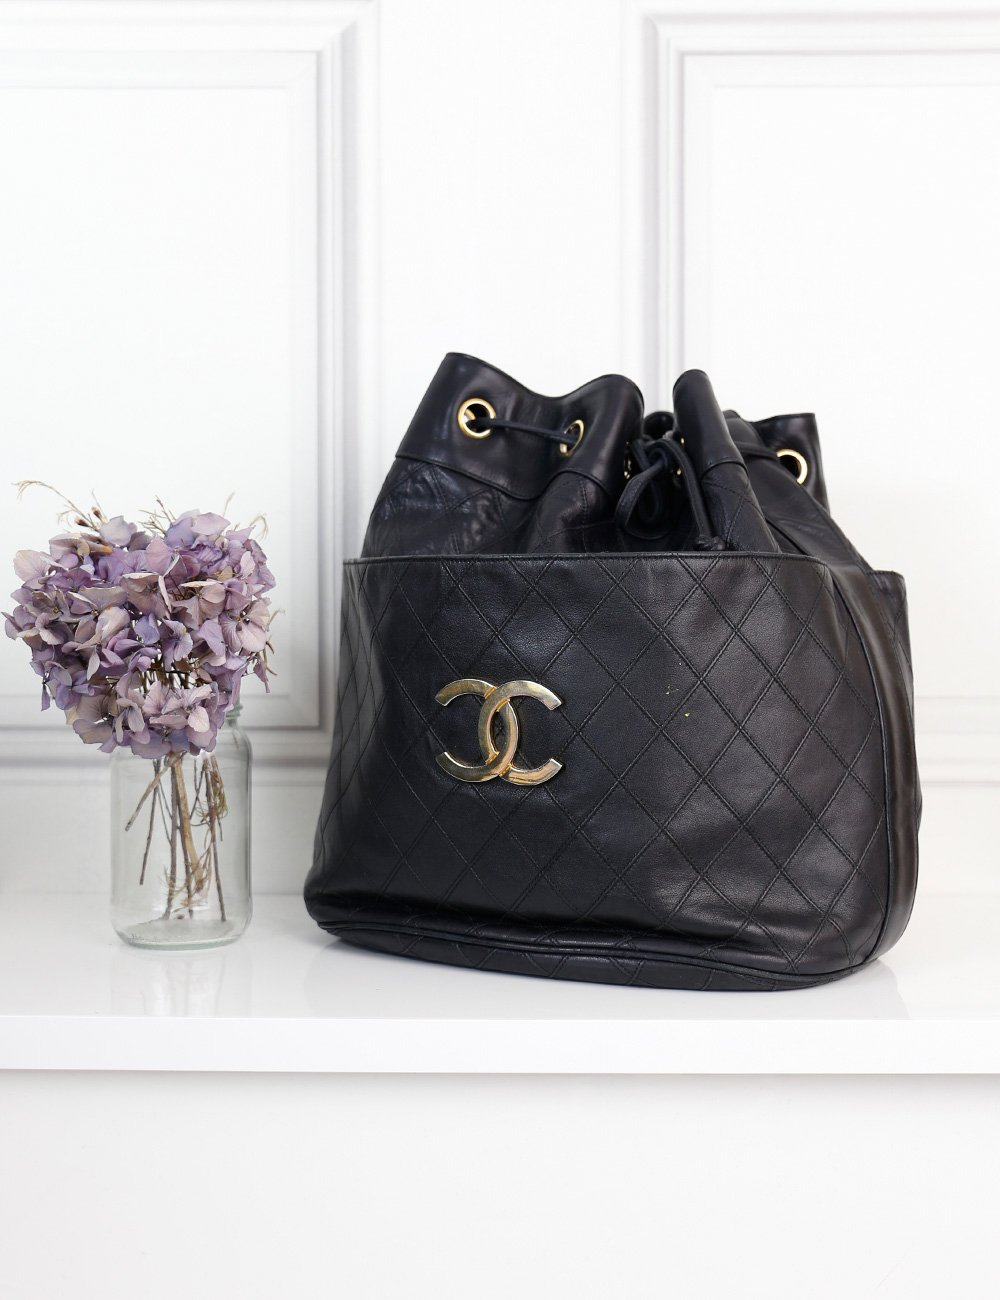 CHANEL BAGS One size / Black CHANEL Drawstring Bucket Large Quilted Leather Shoulder Bag